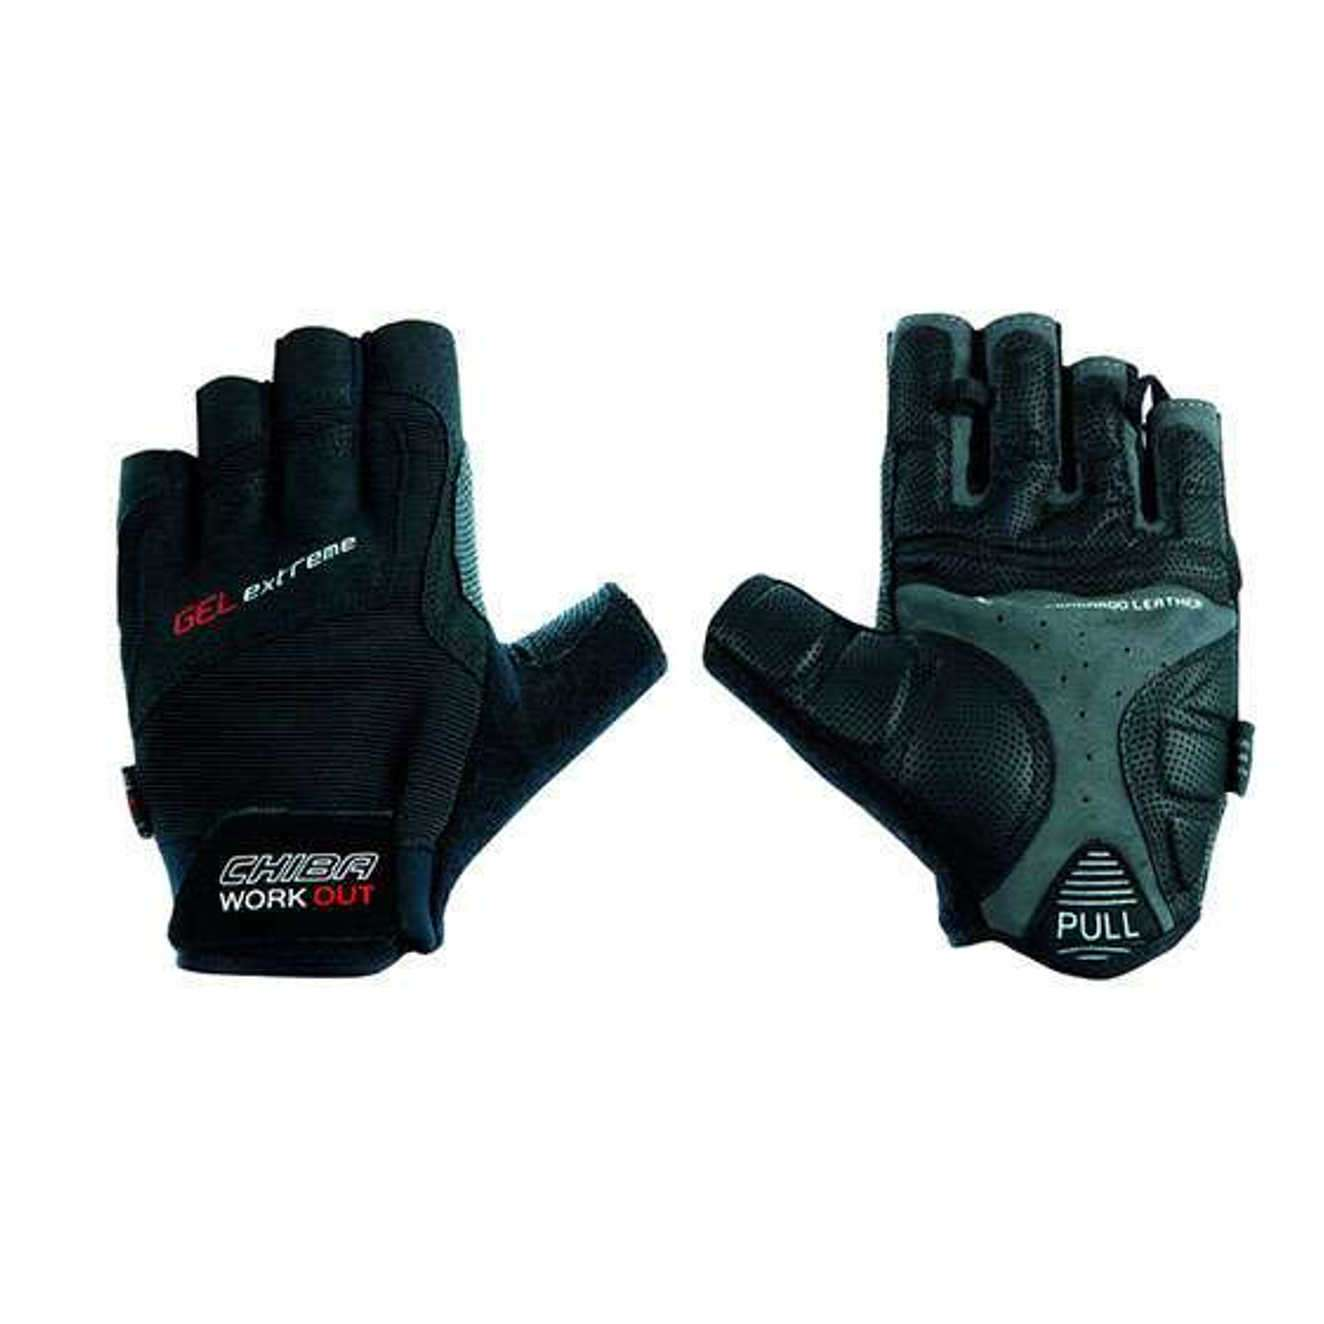 GEL EXTREM BLACK GLOVES